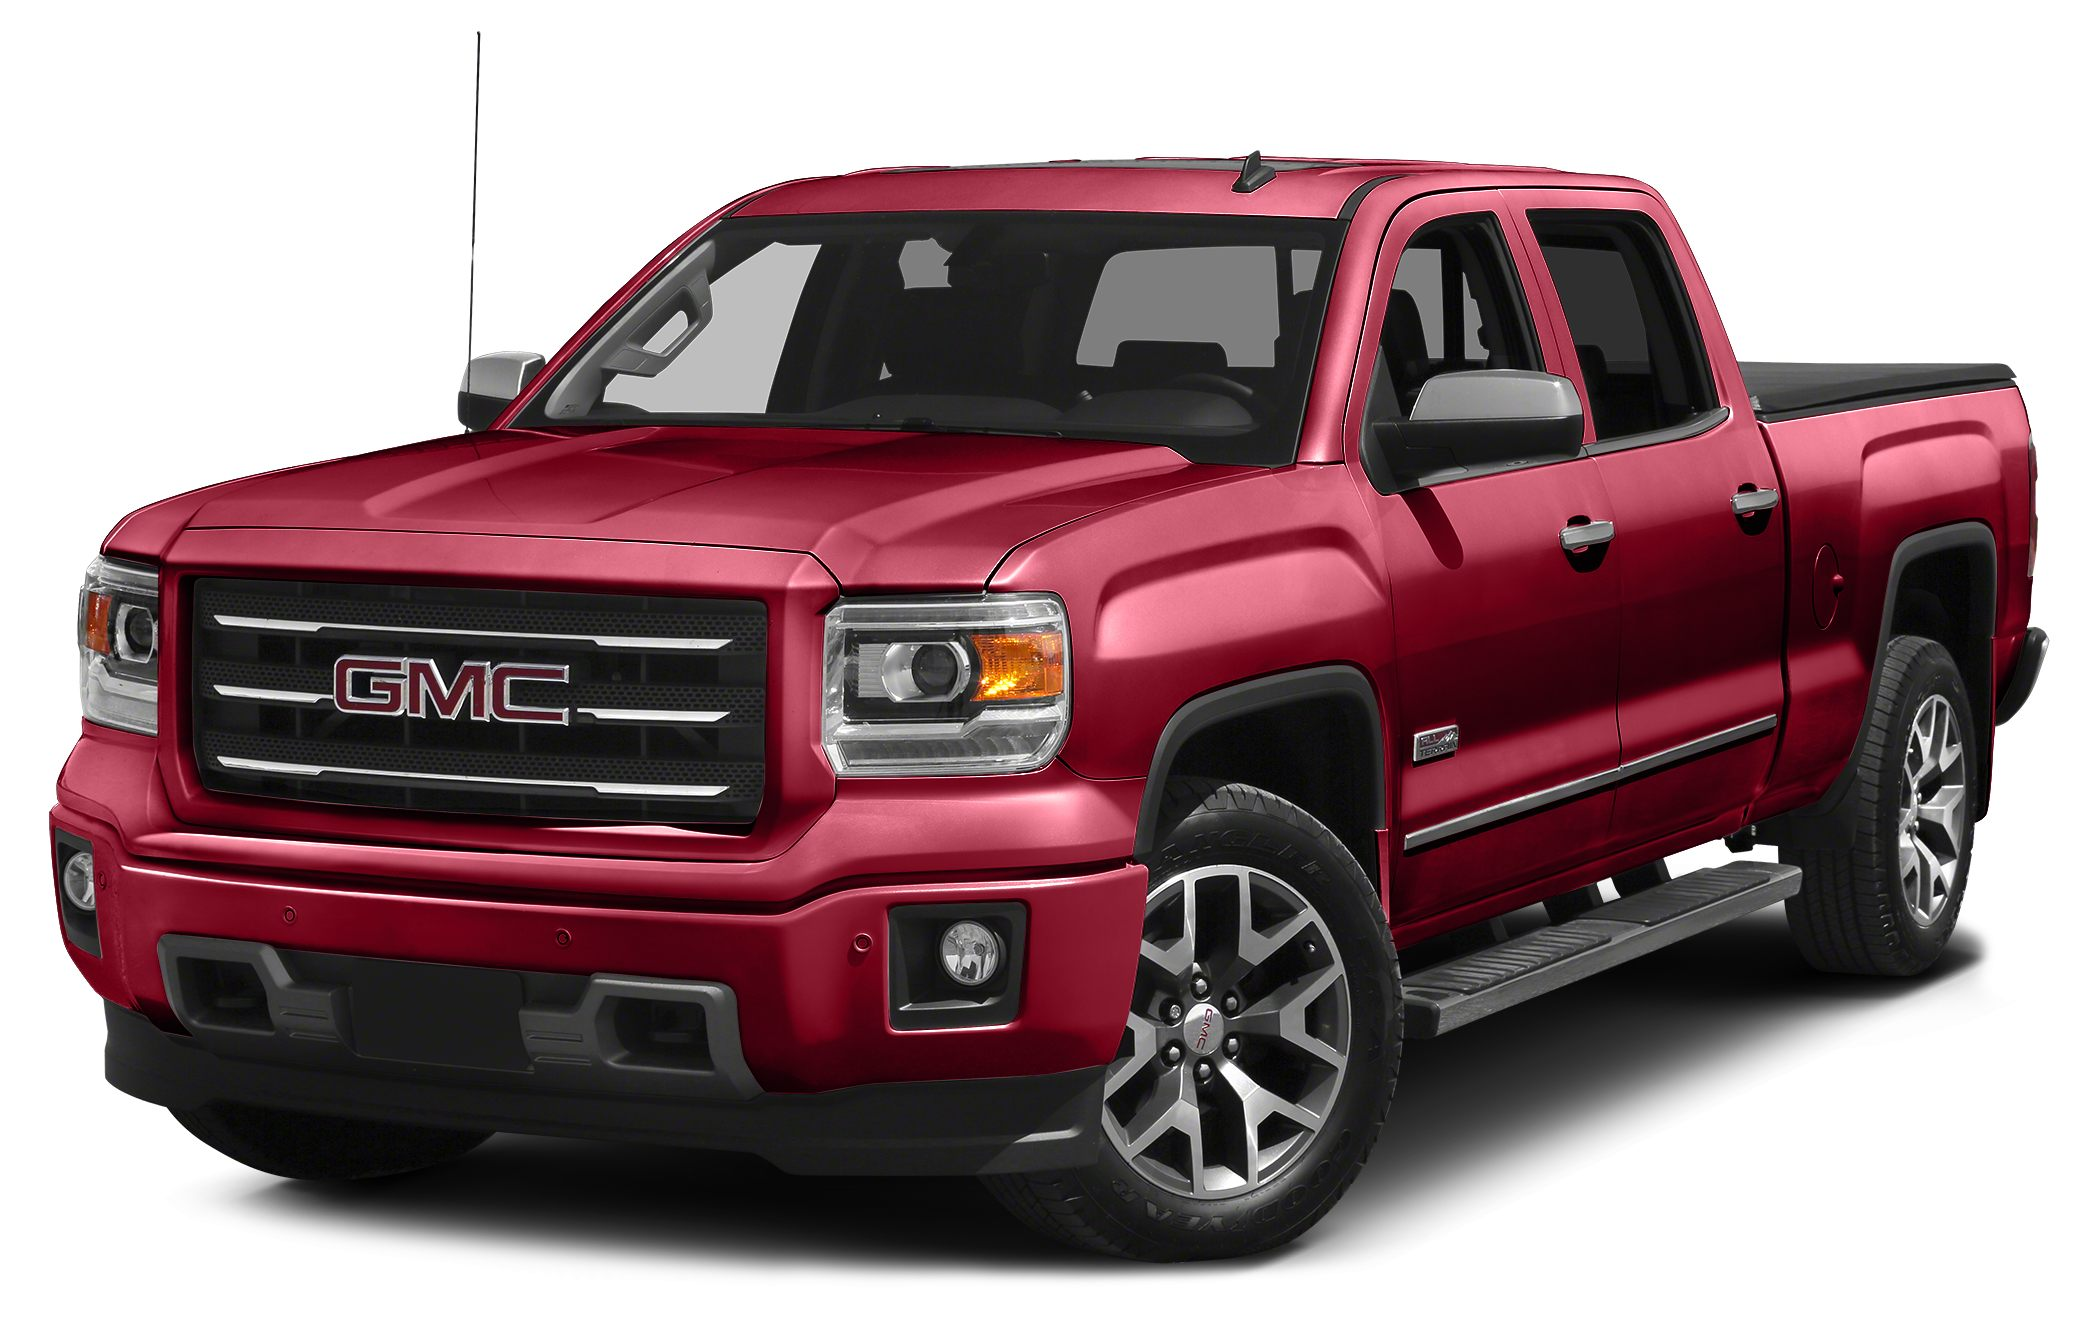 2015 GMC Sierra 1500 SLE The GMC Sierra 1500 possesses chiseled features and distinct lines that n